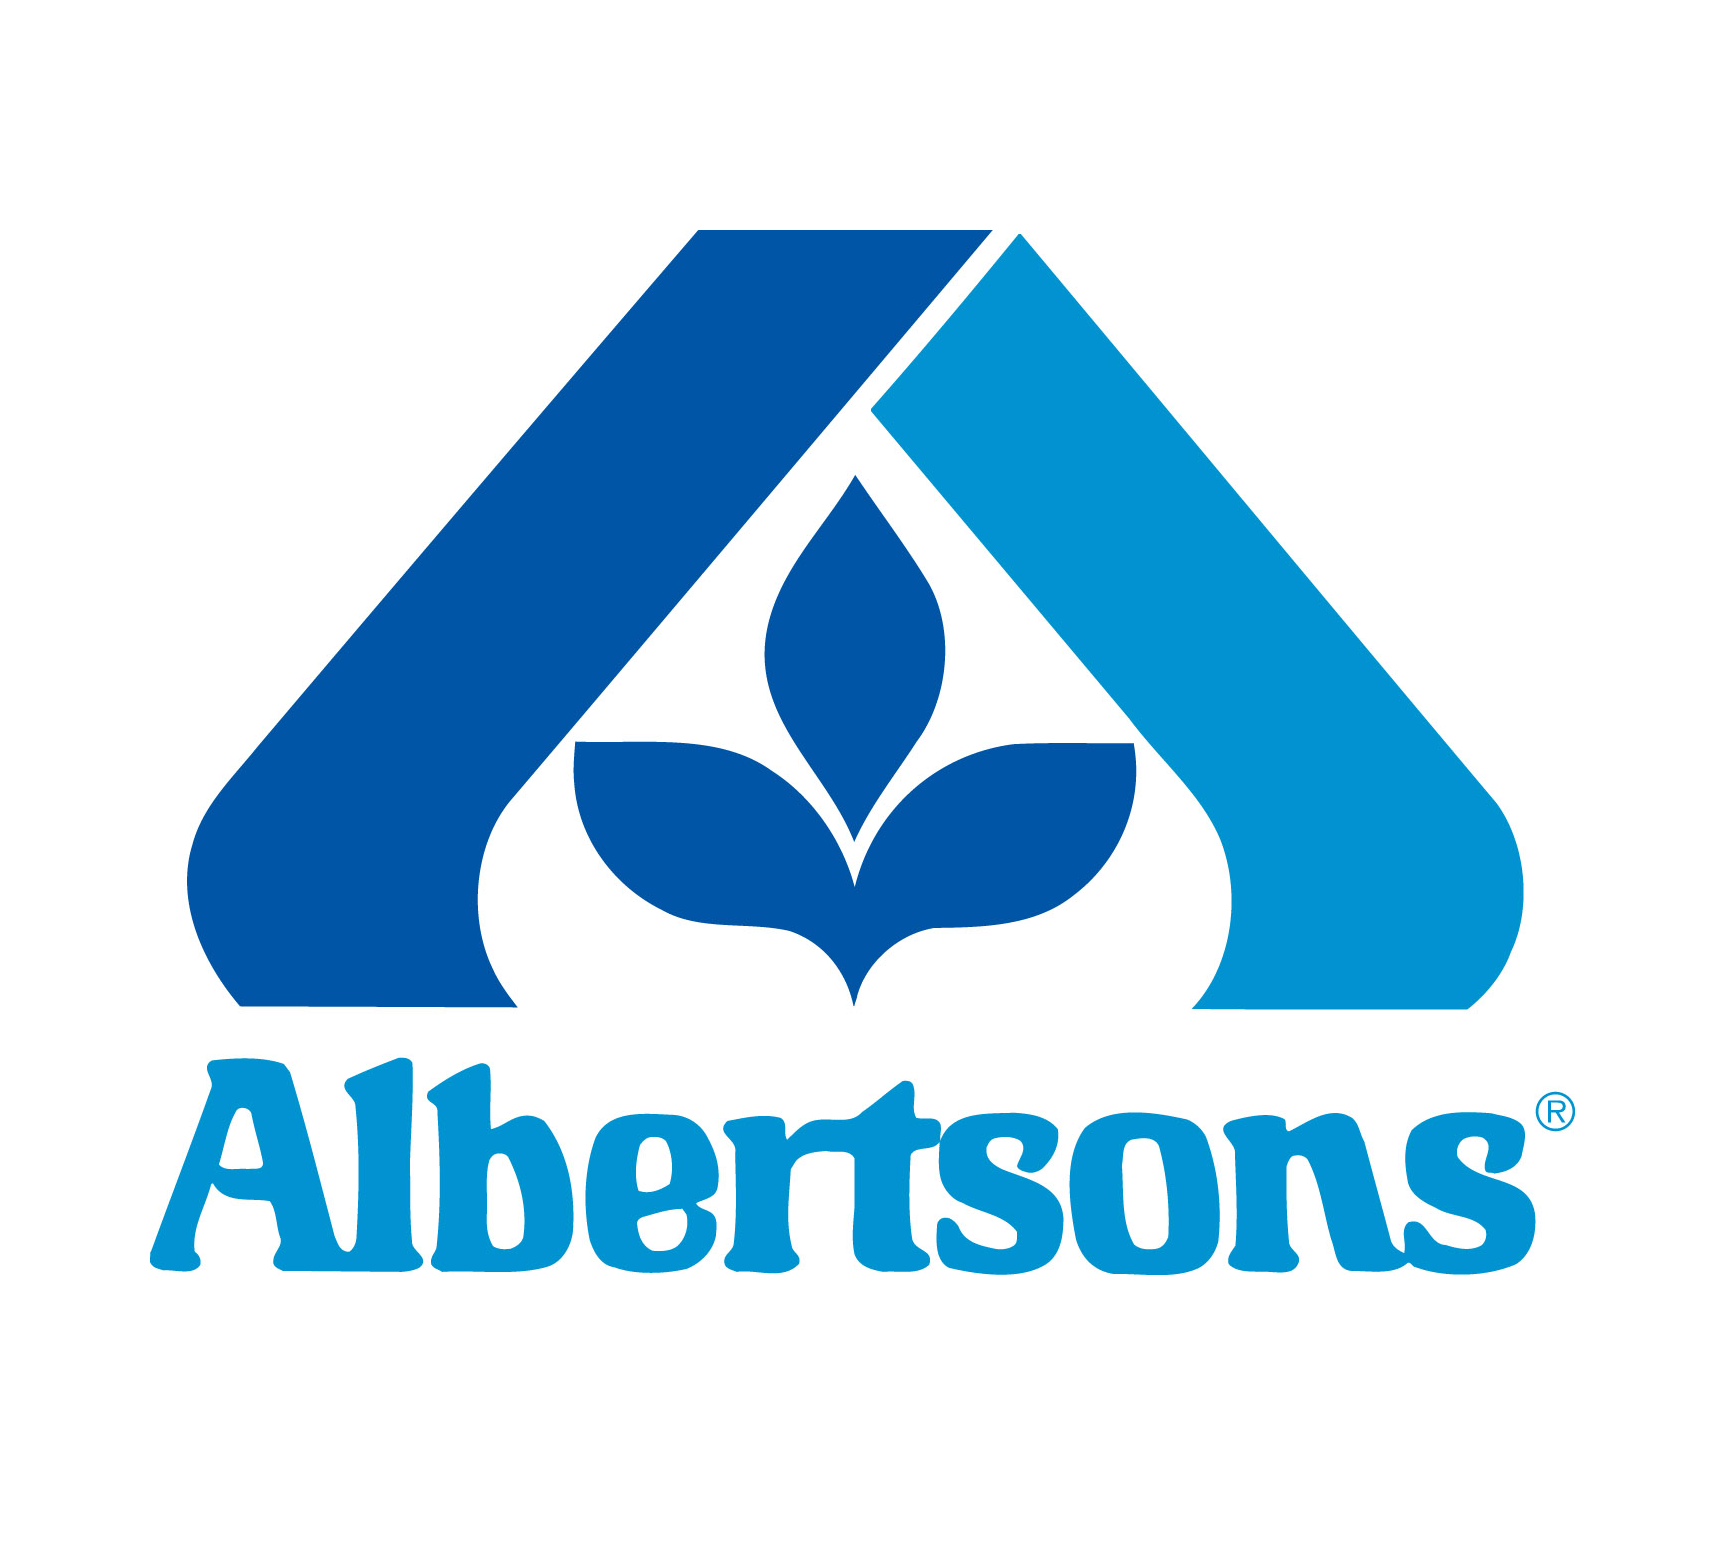 Albertsons Logo And Signs 3